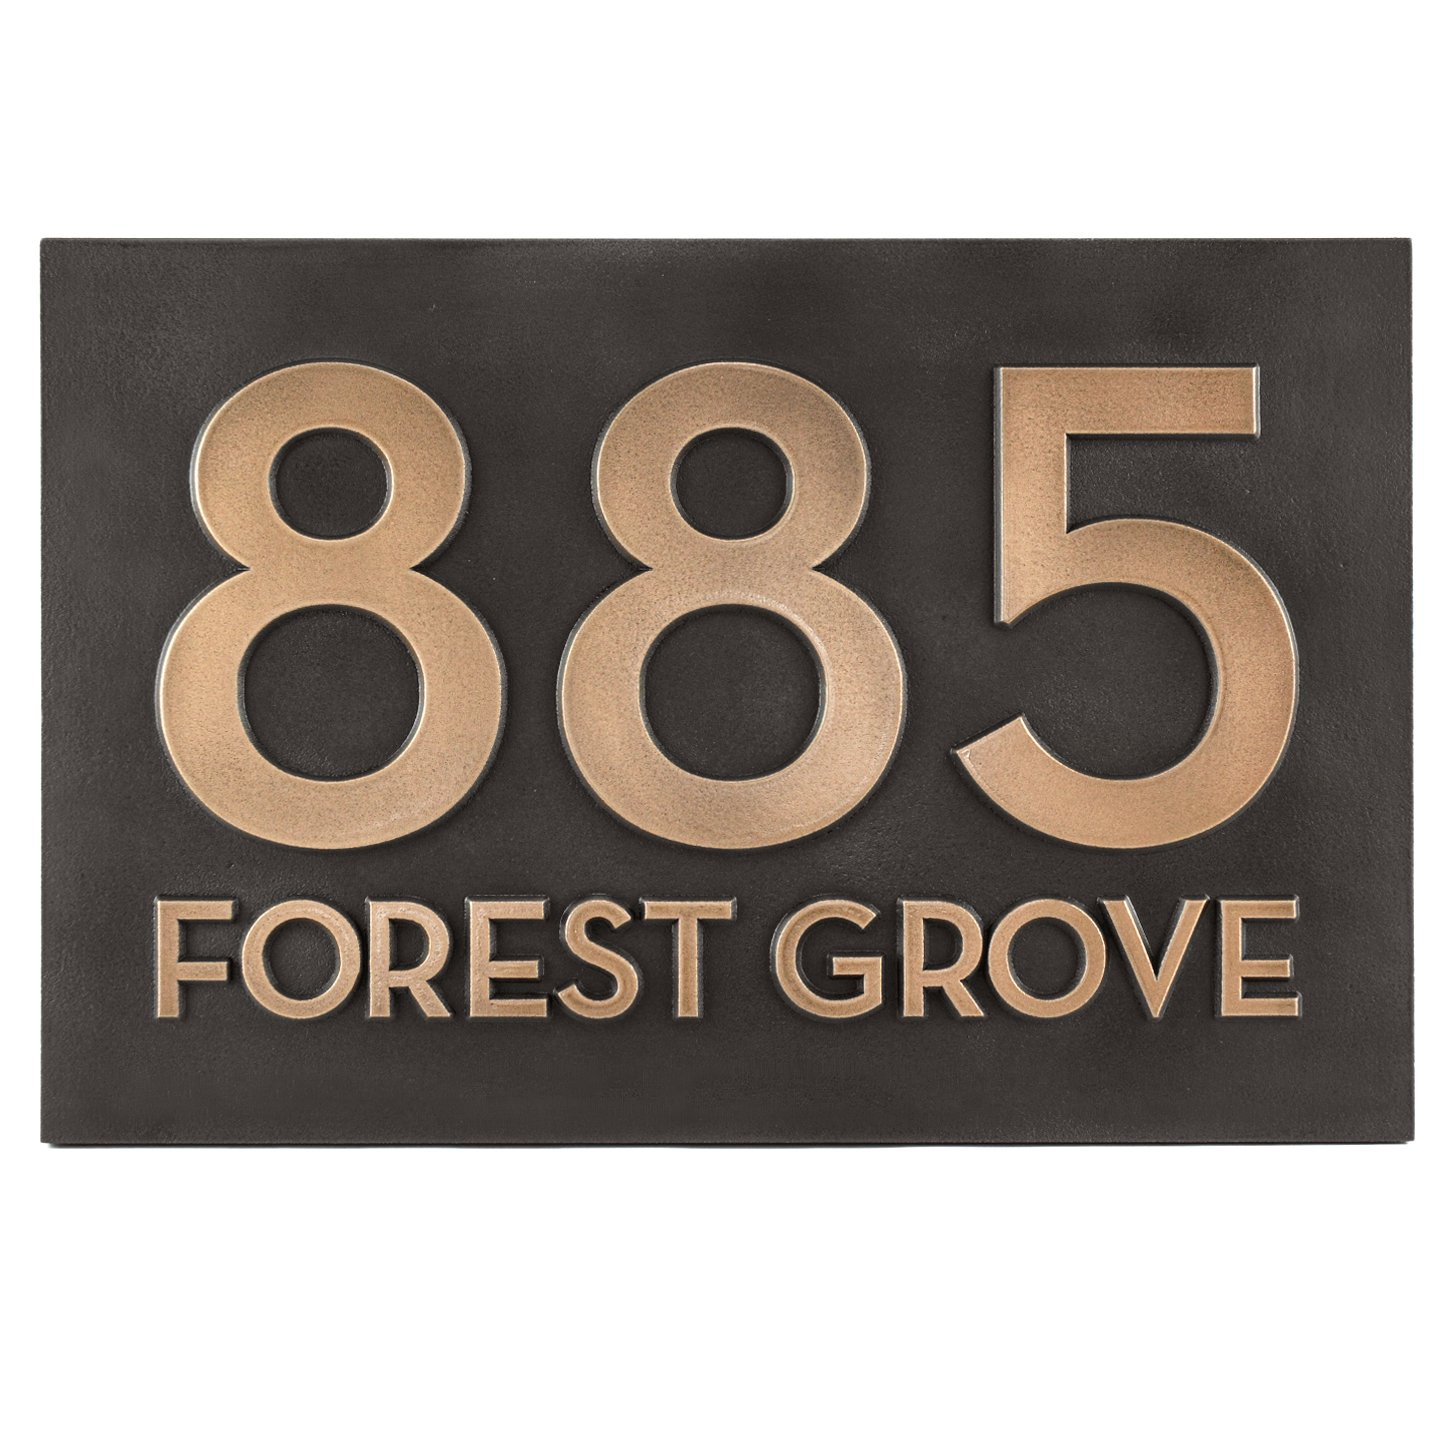 Bold Classy Modern Font Street Address Plaque - 16x10.5 - Bronze Metal Coated Sign by Atlas Signs and Plaques